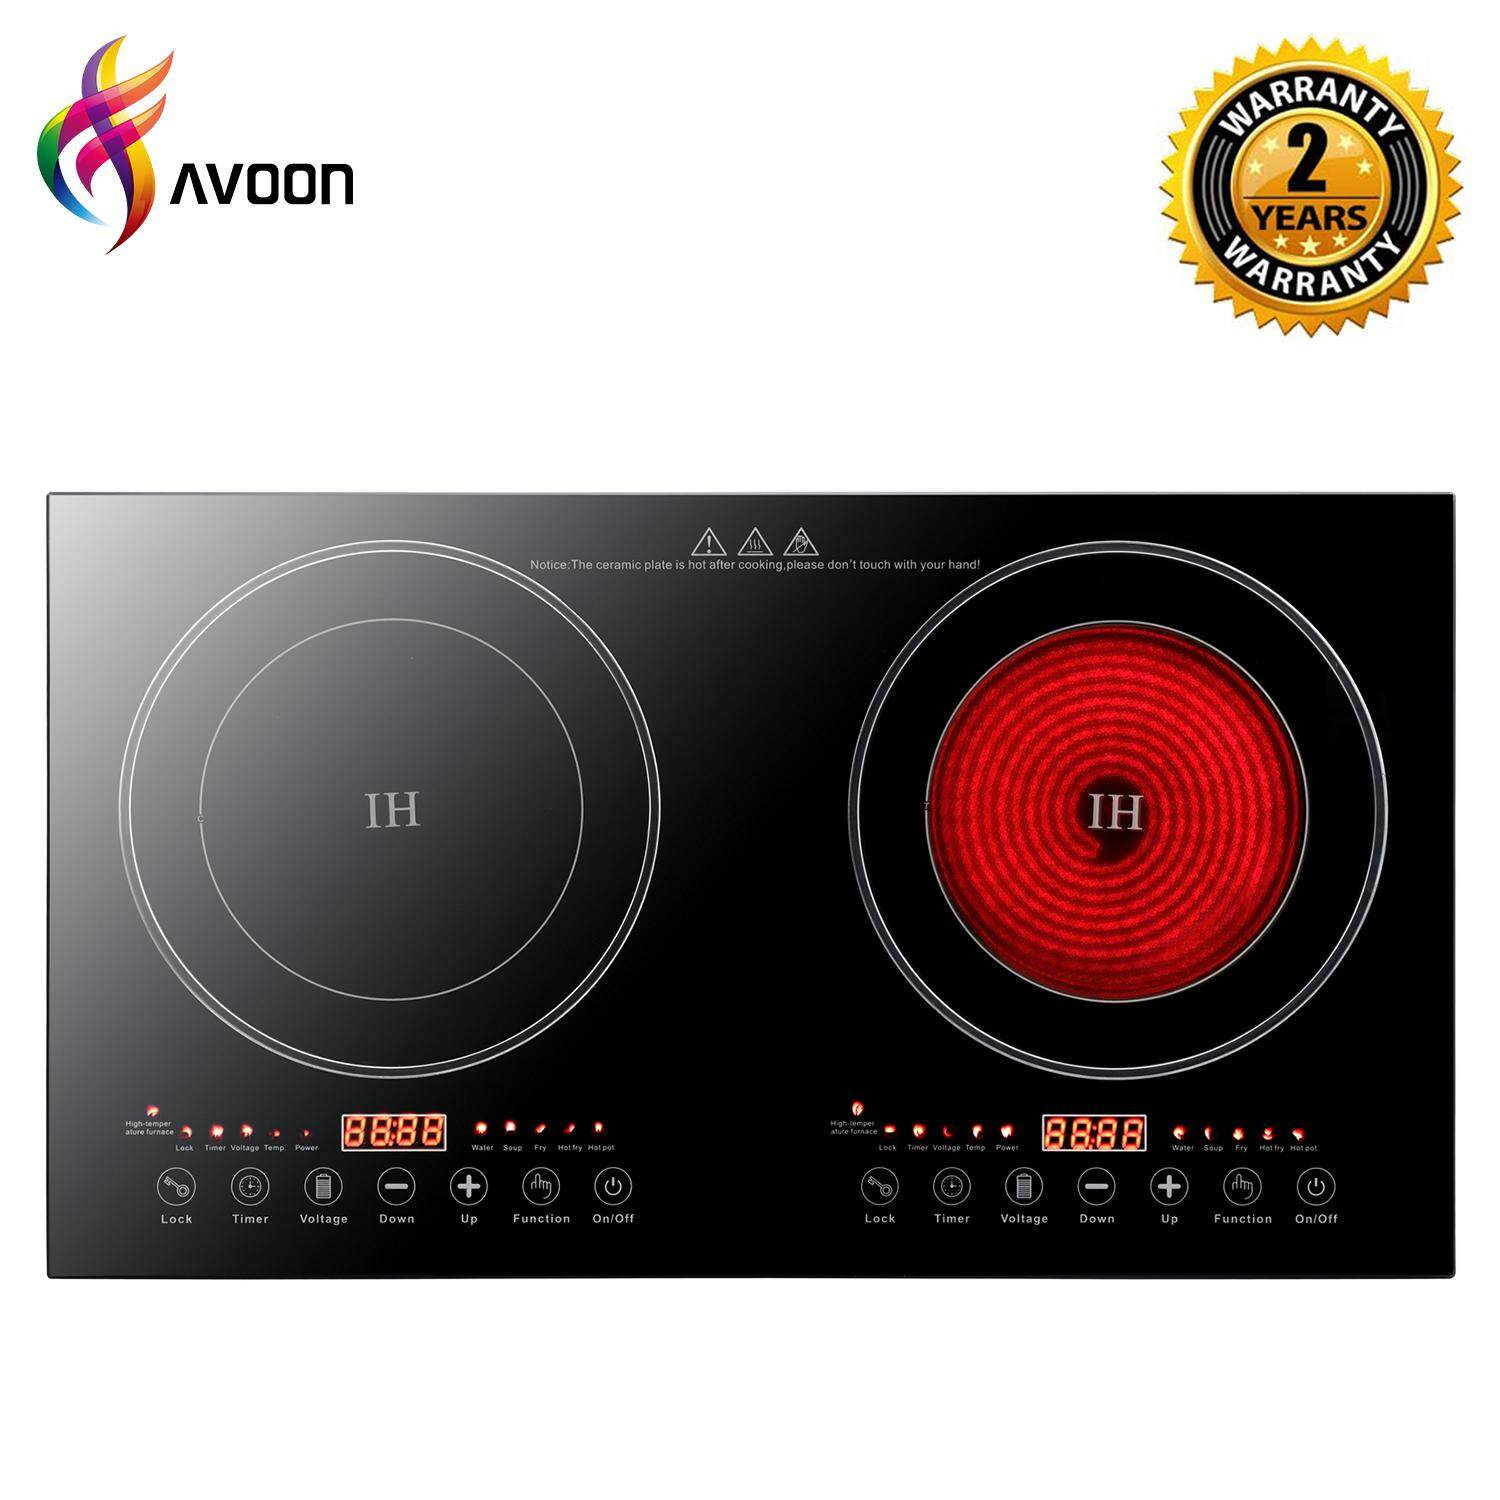 Avoon 2 in 1 Induction & Ceramic Hob Multi Cooker 2200W + 2200W